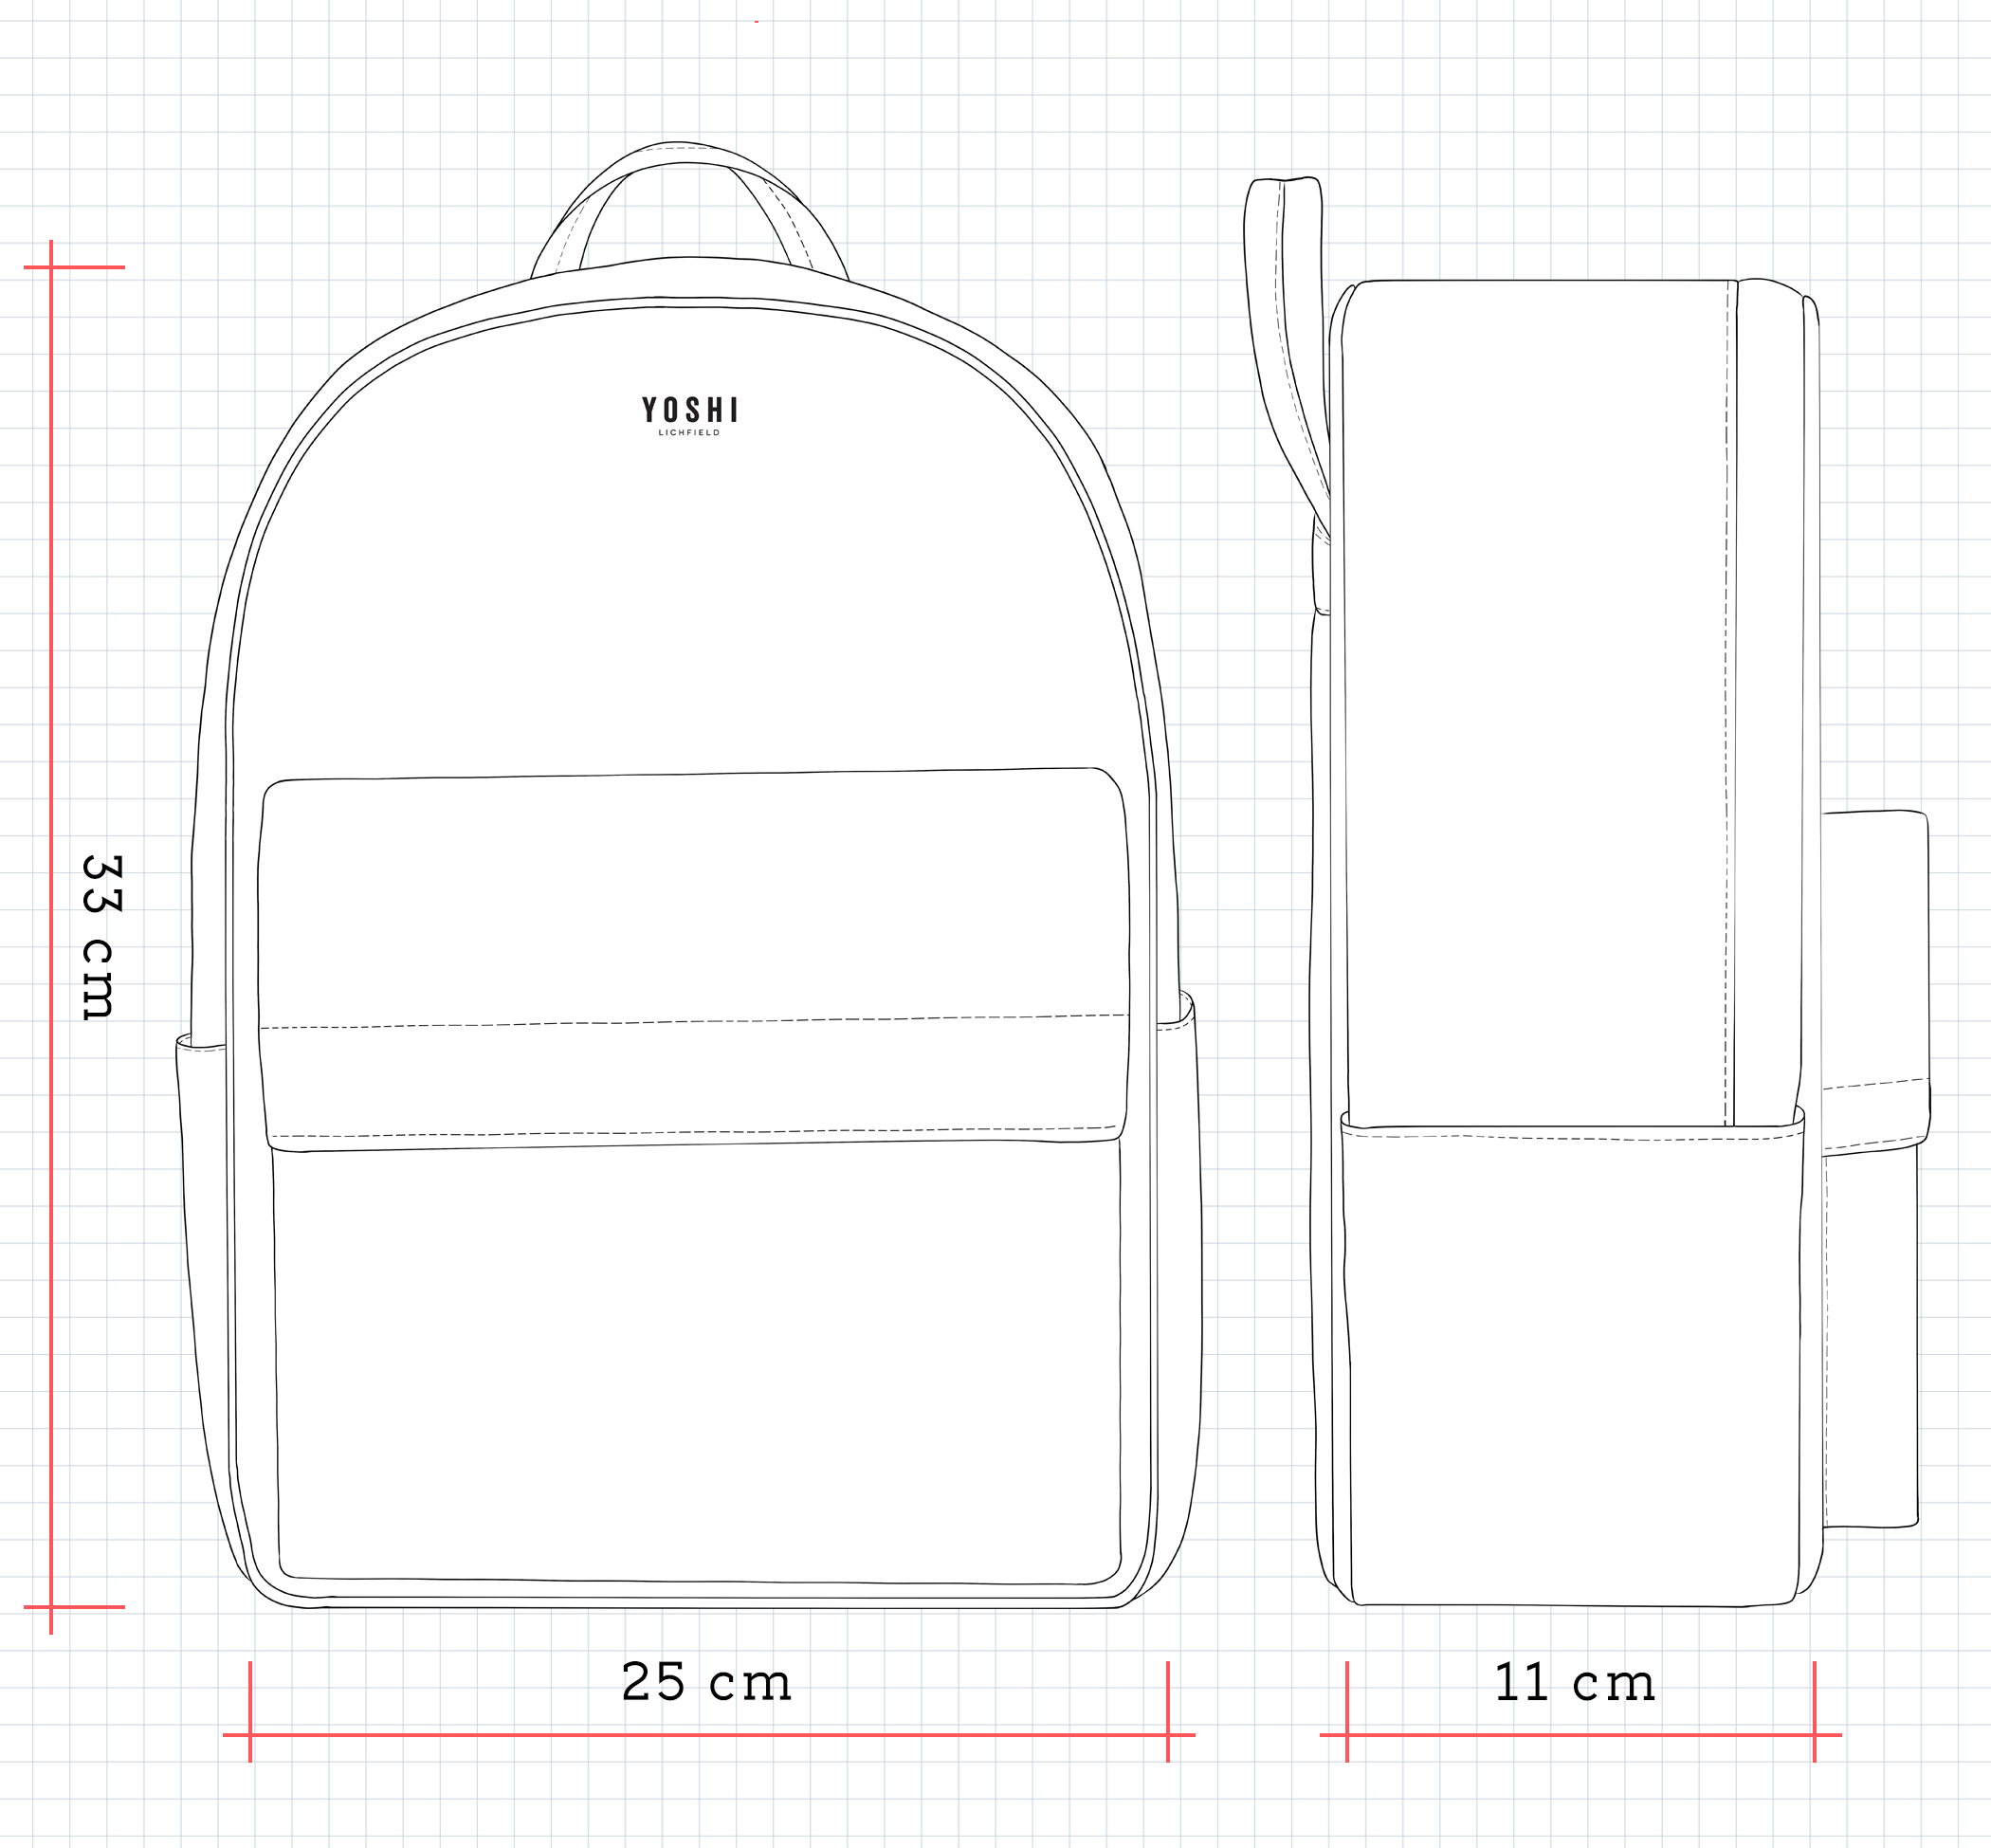 YB220 Leather Back Pack Dimensions